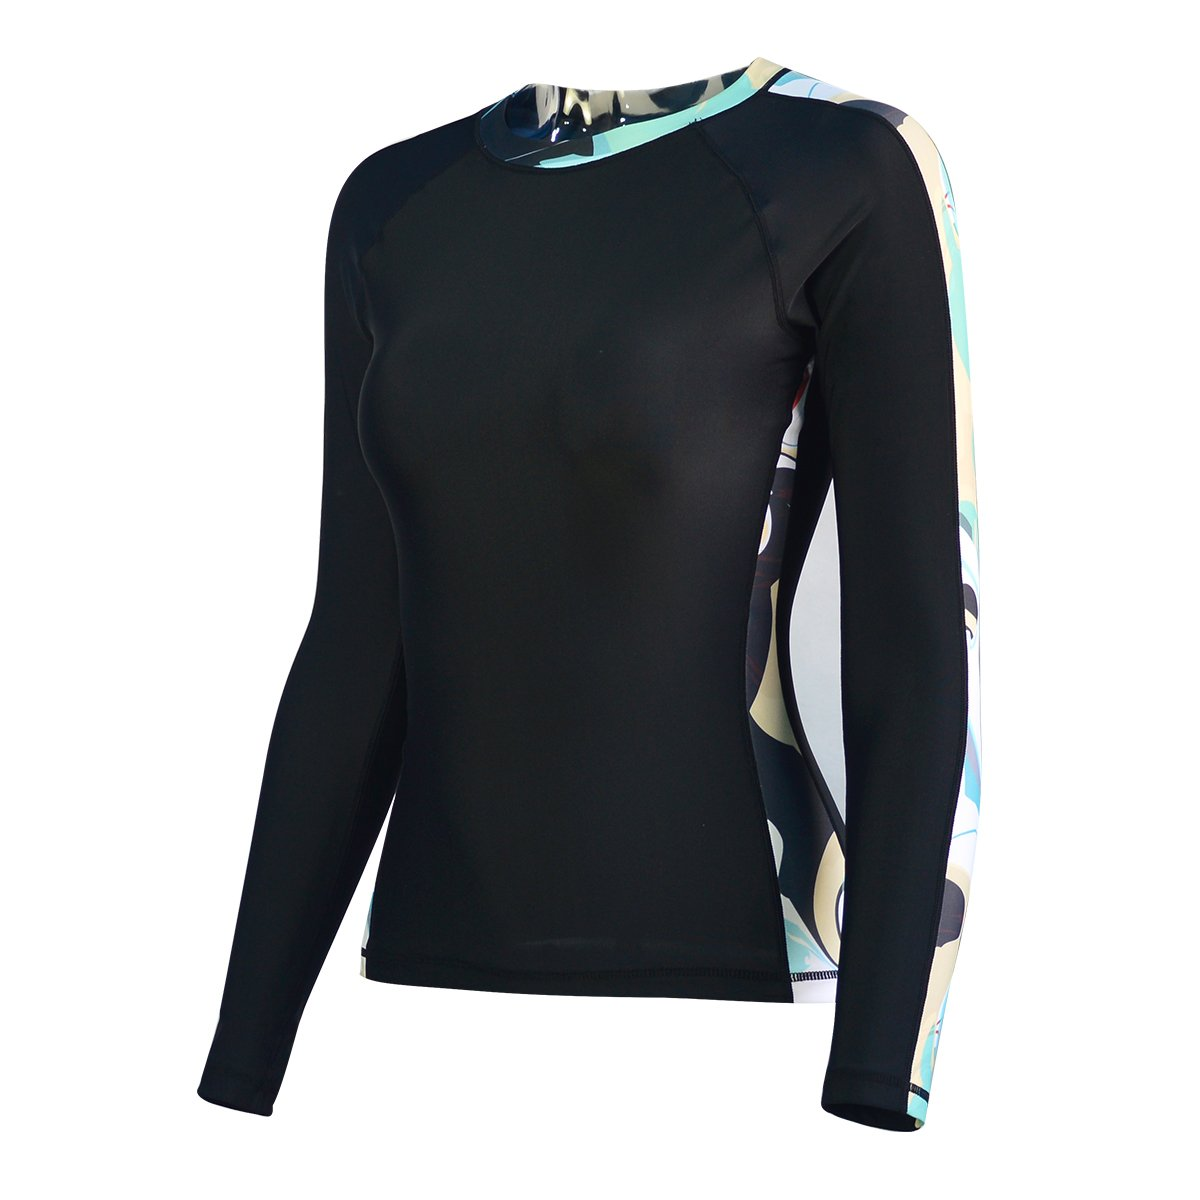 ALEEYA Rash Guard Women Long Sleeves Swimsuit Swimwear Diving Surfing Kayaking Boating Swimming Rashguards UV Protection T-Shirt Bathing Suit Quick Dry Fitness Yoga Beach Pools Rash Guard Lady